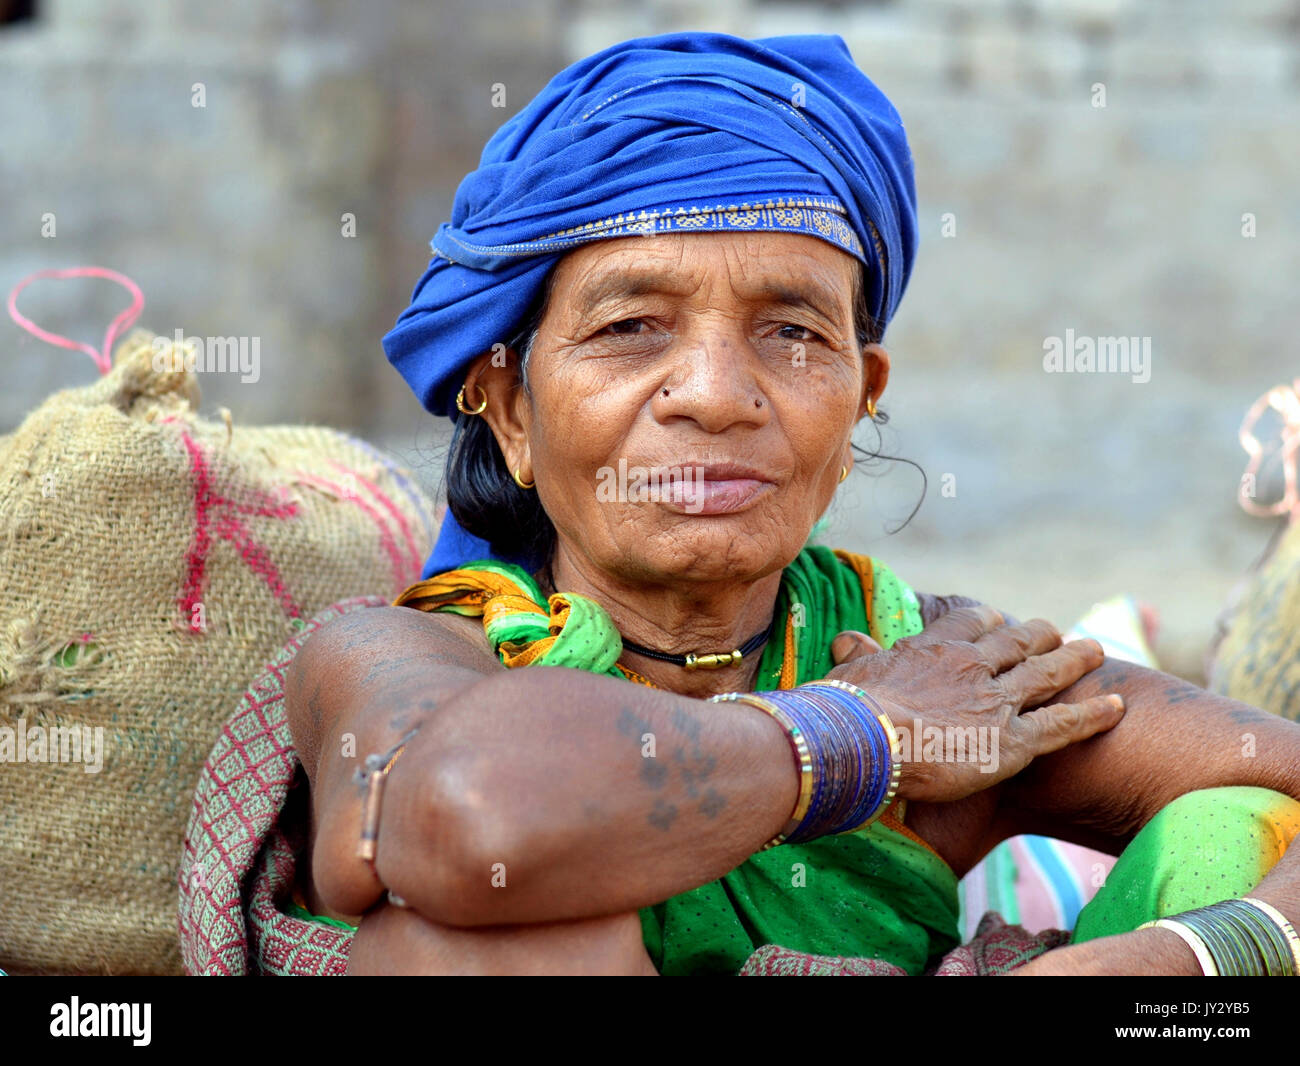 Closeup street portrait of an elderly Indian Adivasi market woman with blue headwrap and blue bangles. - Stock Image